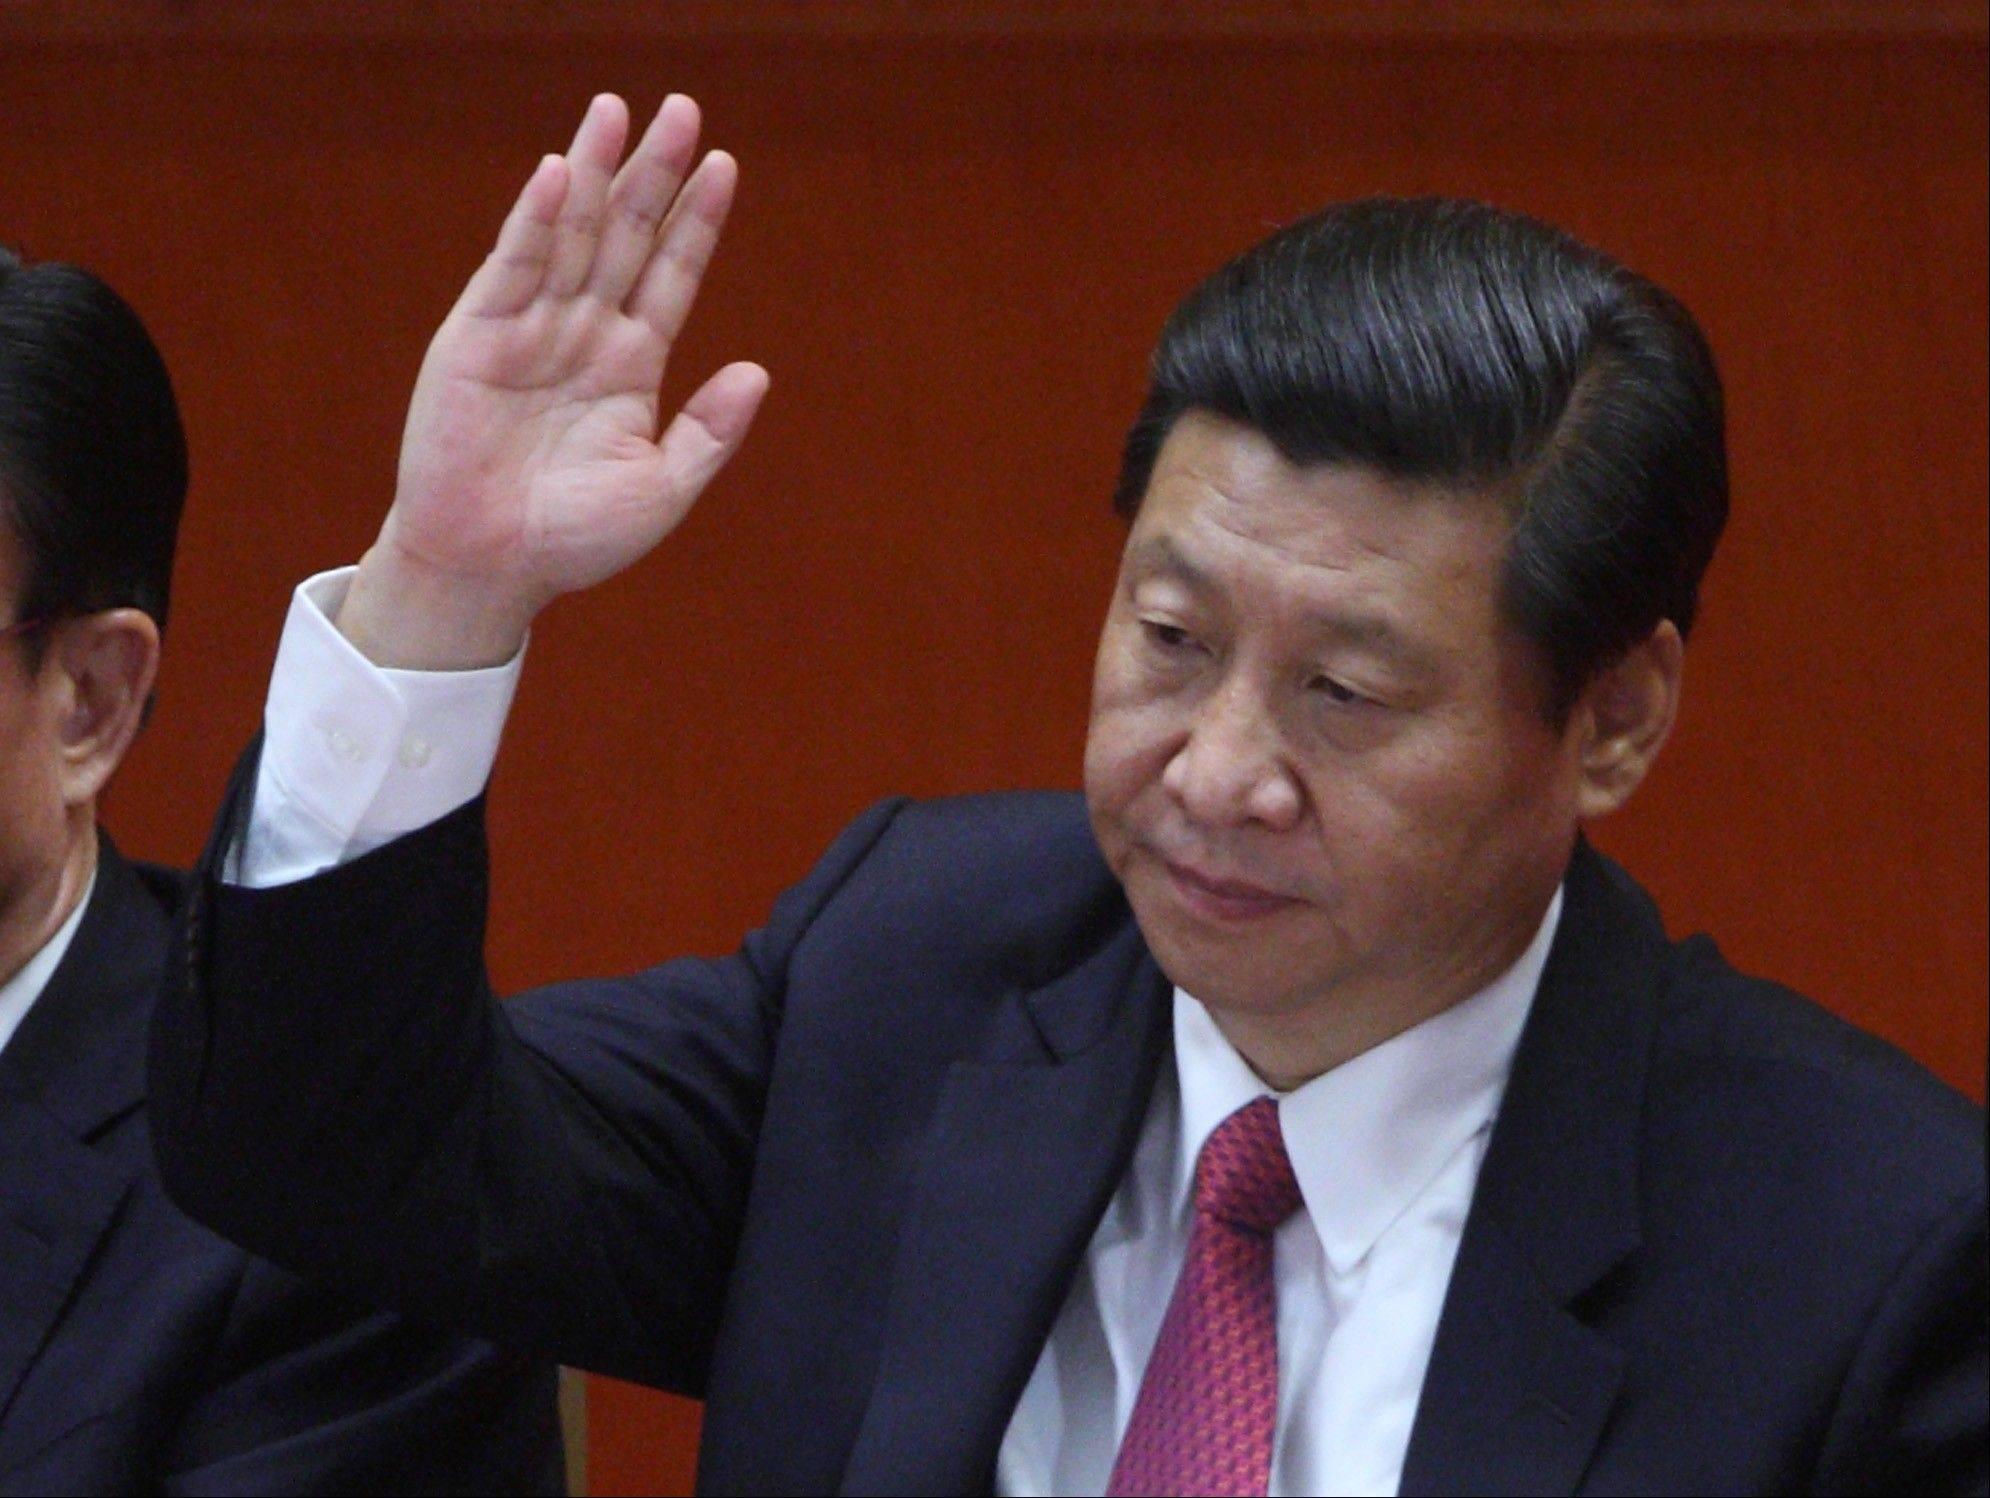 Xi Jinping, China's vice president, raises his hand during the closing session of the 18th National Congress of the Communist Party of China at the Great Hall of the People in Beijing, China, on Wednesday, Nov. 14, 2012. Xi and Vice Premier Li Keqiang were reappointed to the Chinese Communist Party's Central Committee, positioning them to take over the top two posts in the world's second-biggest economy.